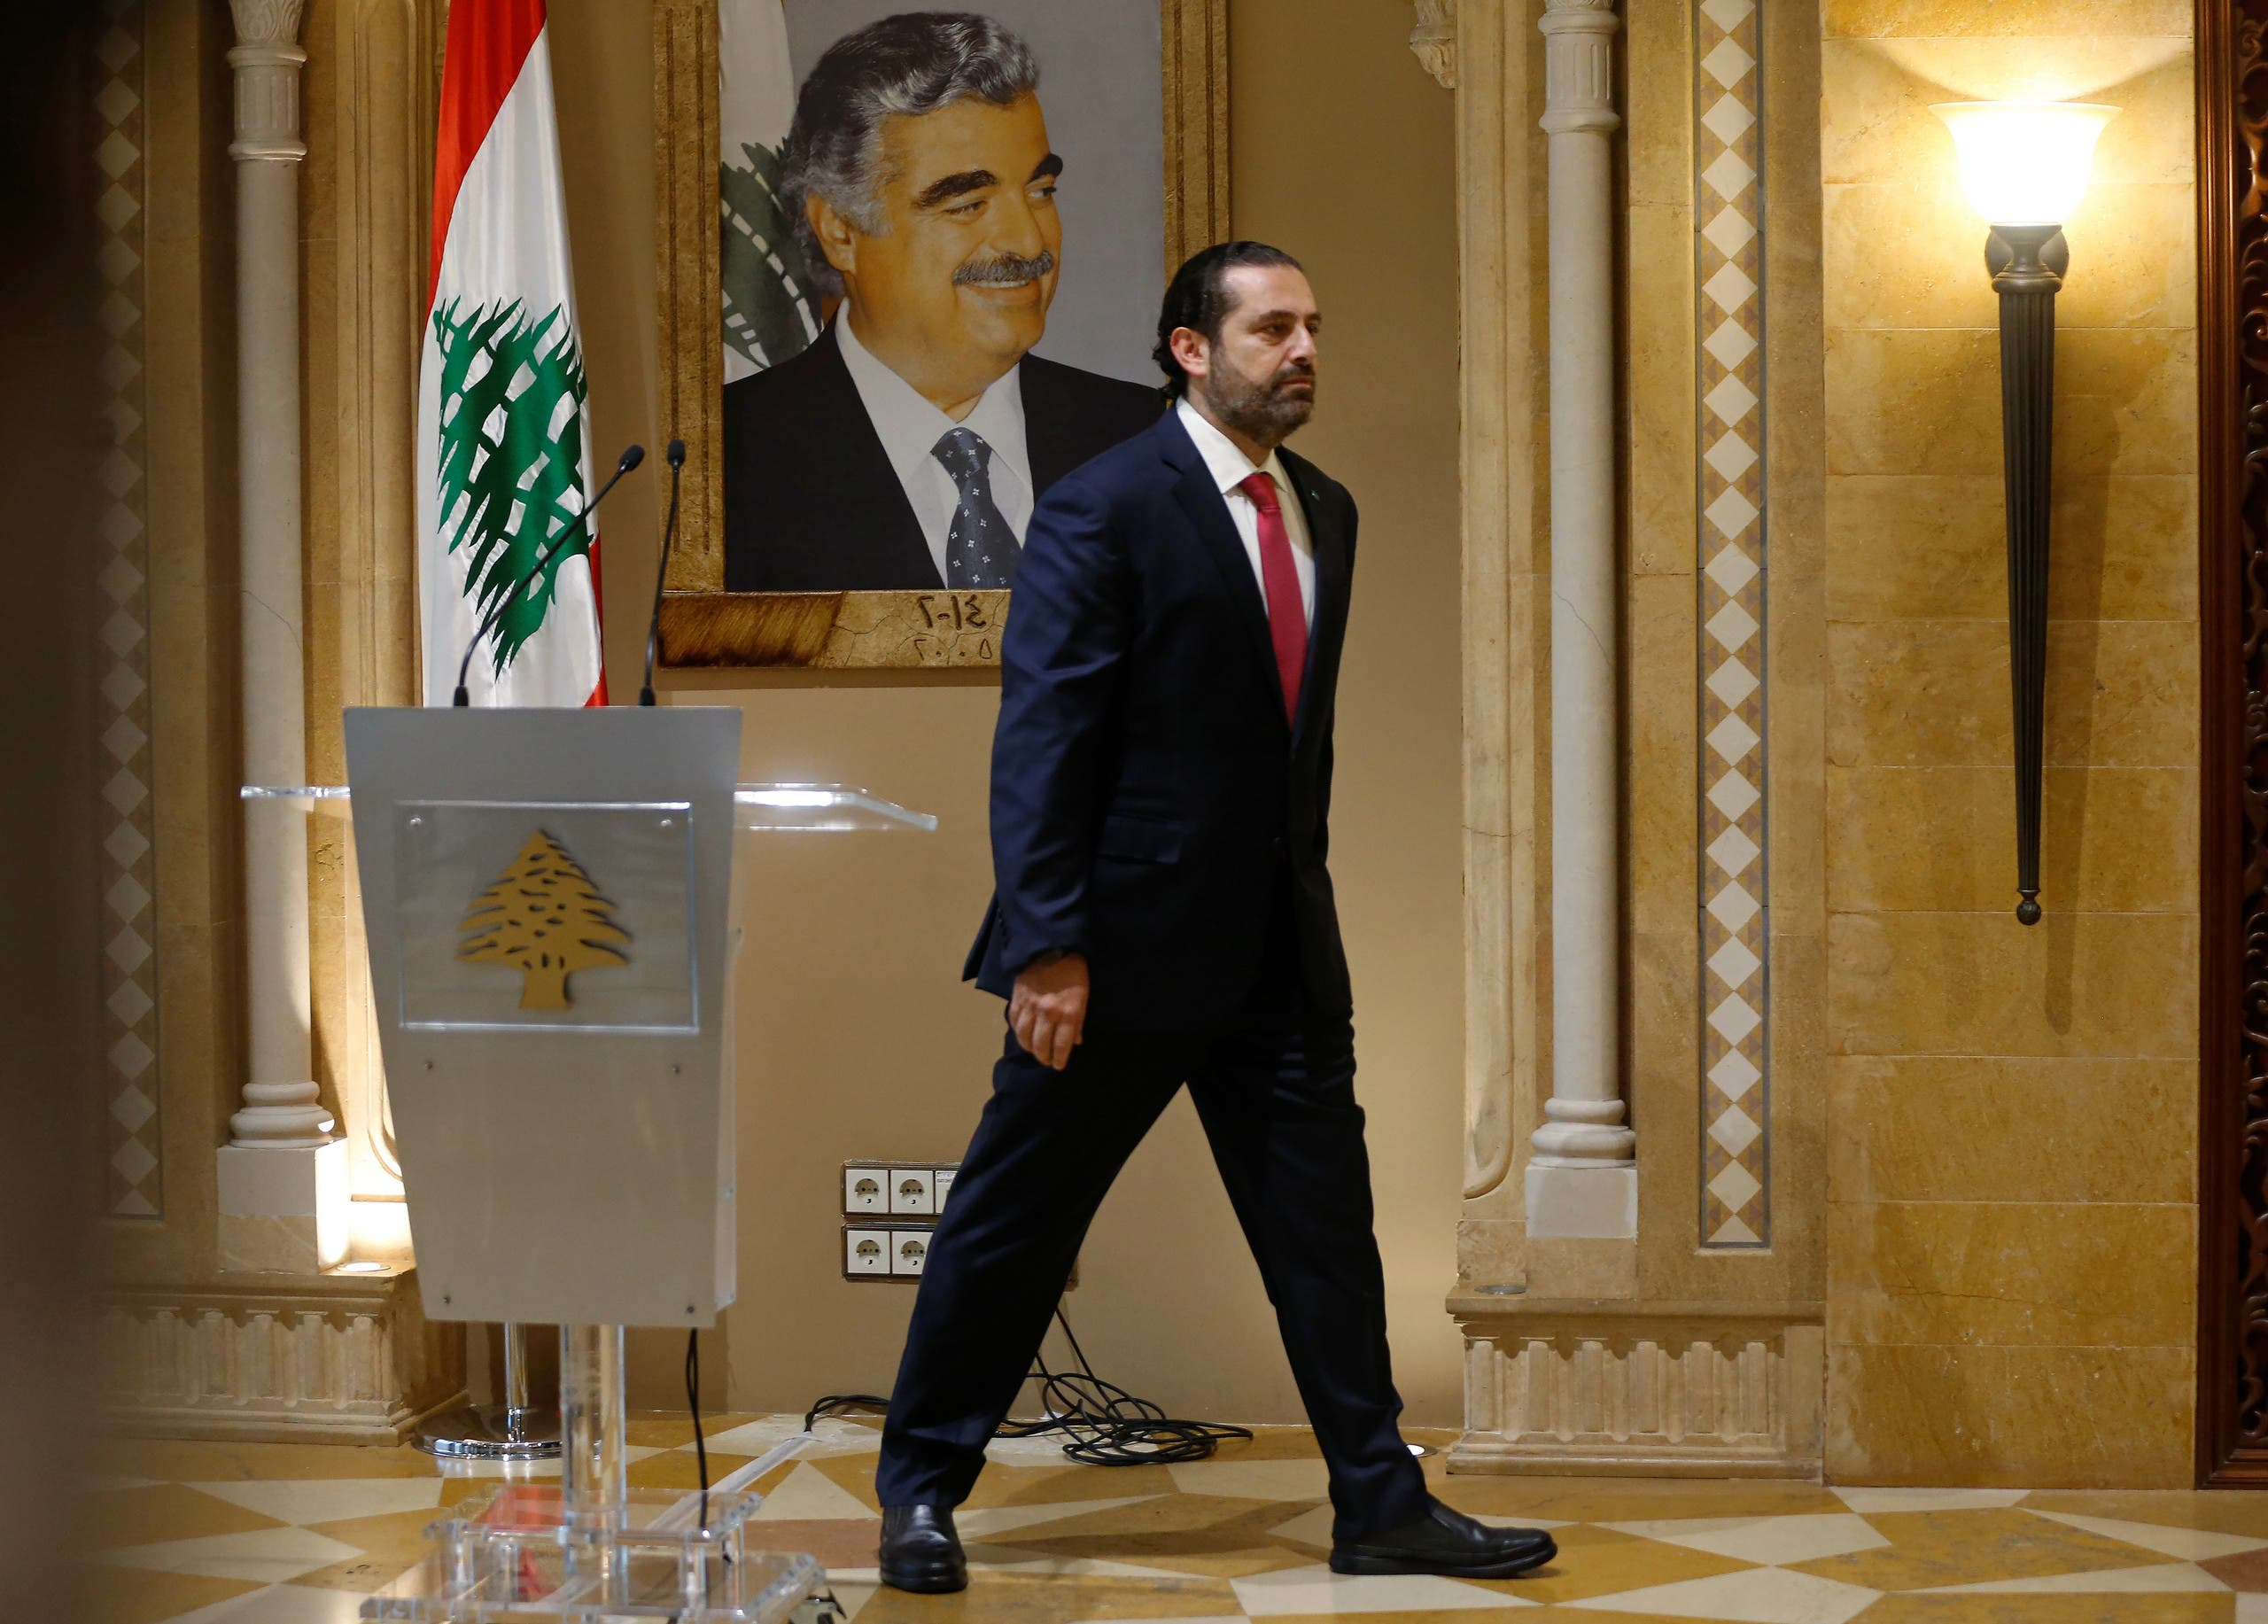 Saad Hariri leaves after a news conference in Beirut, October 29, 2019. (Reuters)